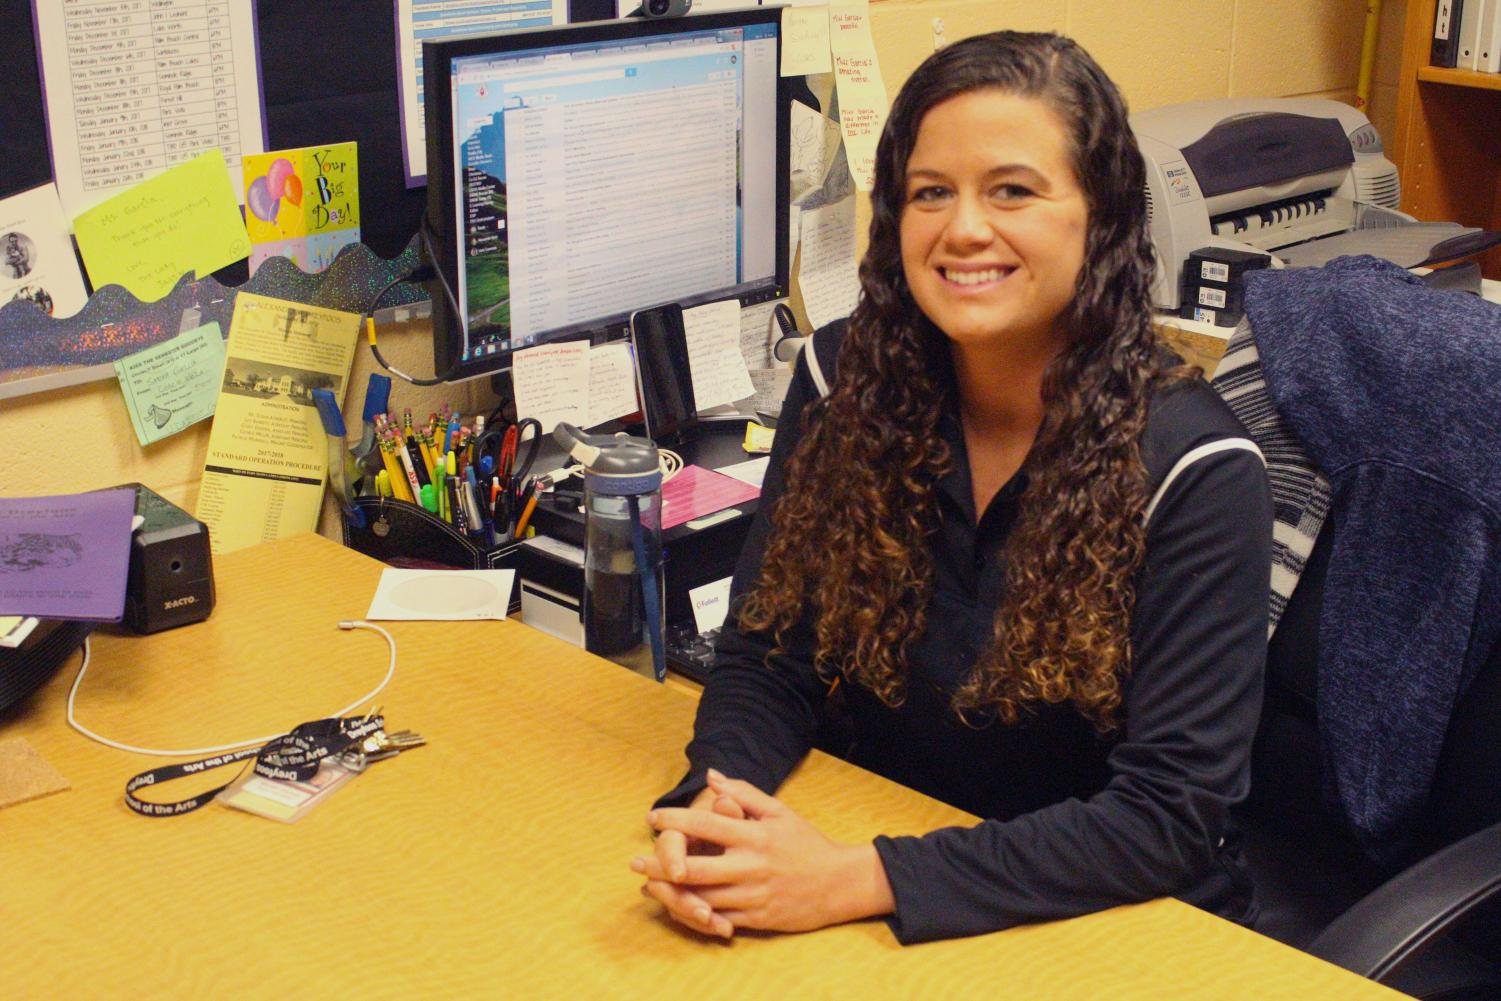 Aside from her job in the media center at Dreyfoos, media specialist Sarah Garcia works at Palm Beach State College as a tutor.